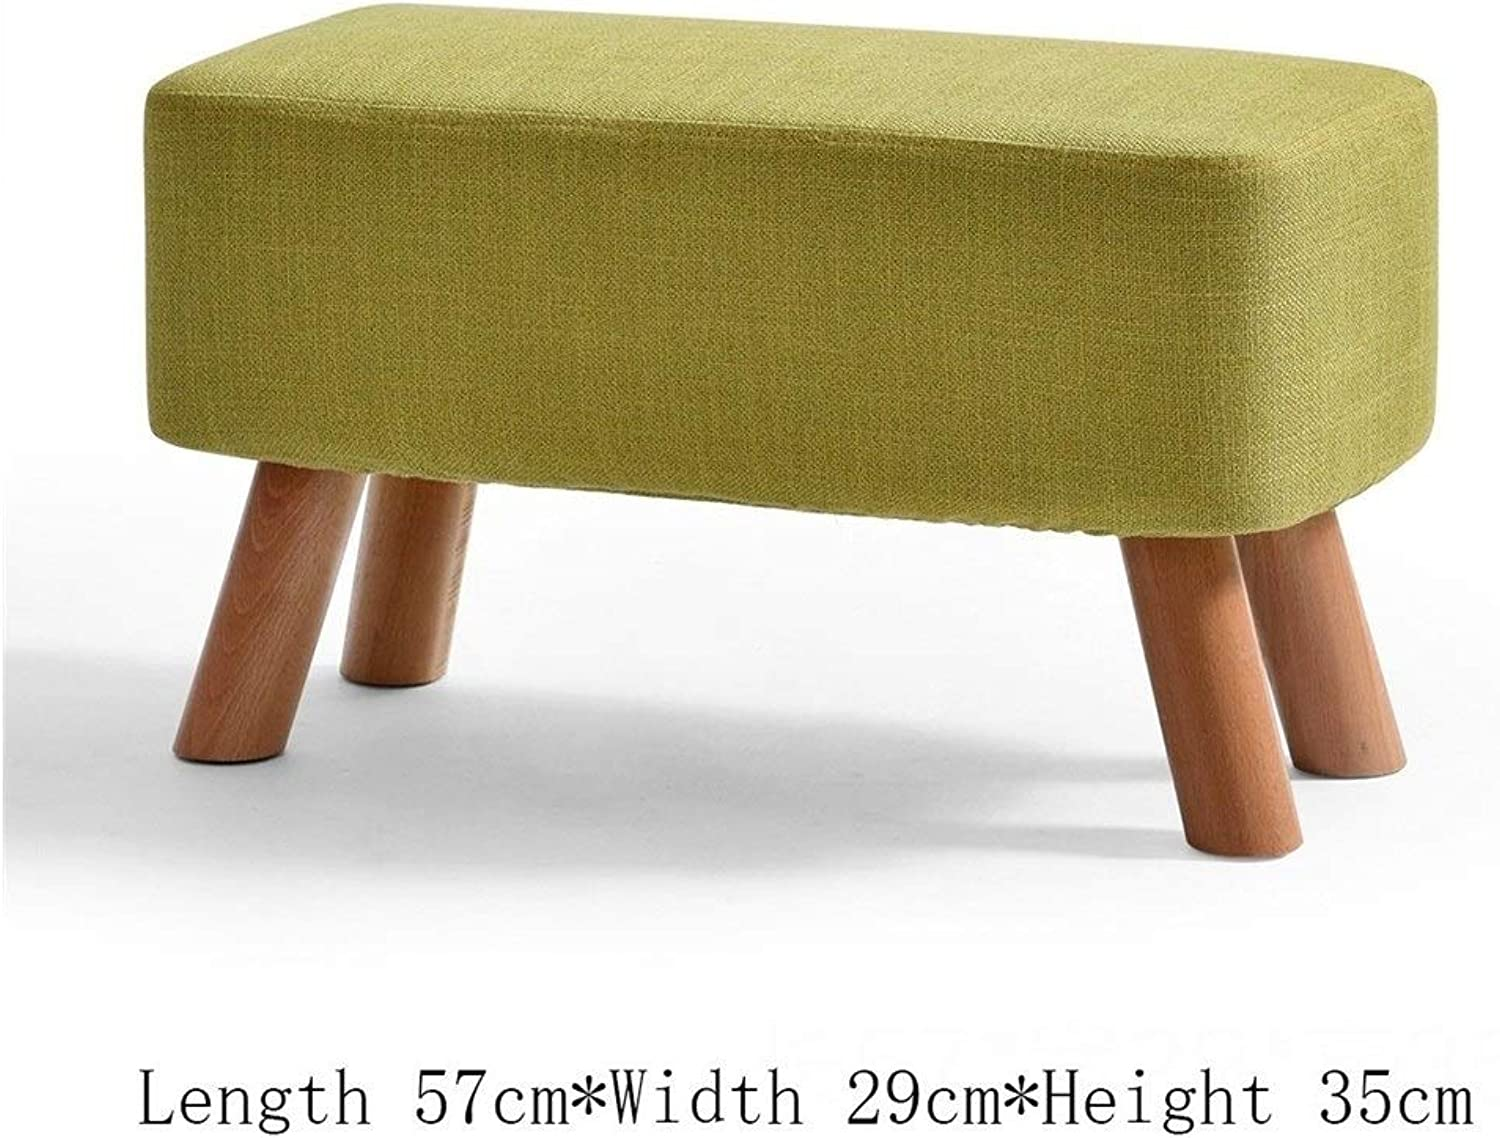 Solid Wood Cotton Linen Fashion Simple Creative Sofa Living Room Bedroom Home shoes Replacement Stool FENPING (color   B)